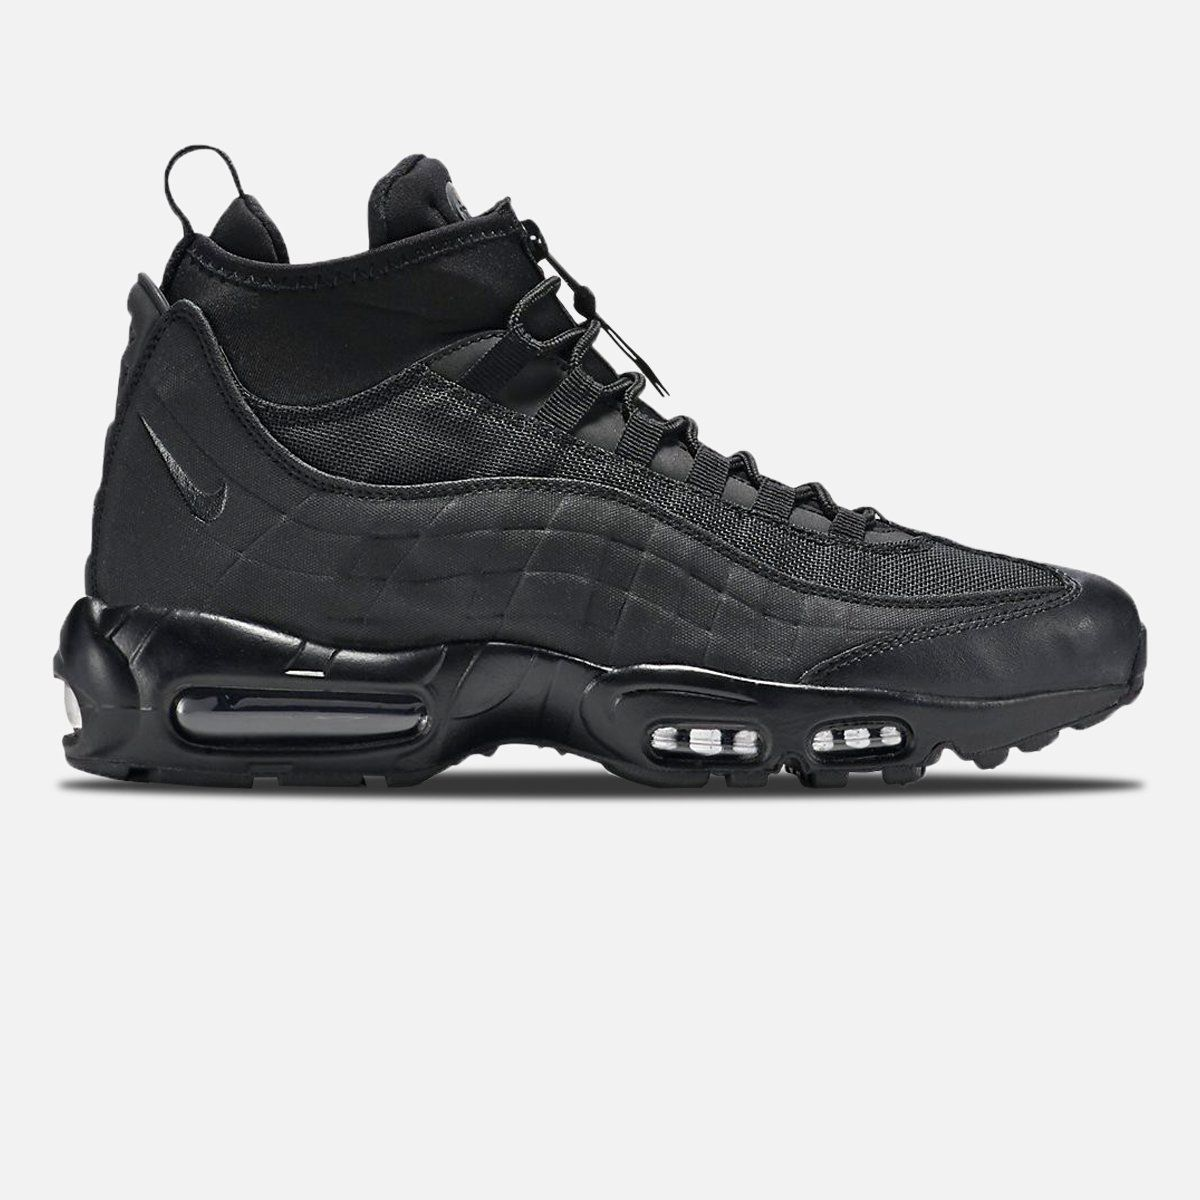 95e87baa88 Nike Air Max 95 Sneakerboot ($160) | Sneakers in 2019 | Nike Air Max ...